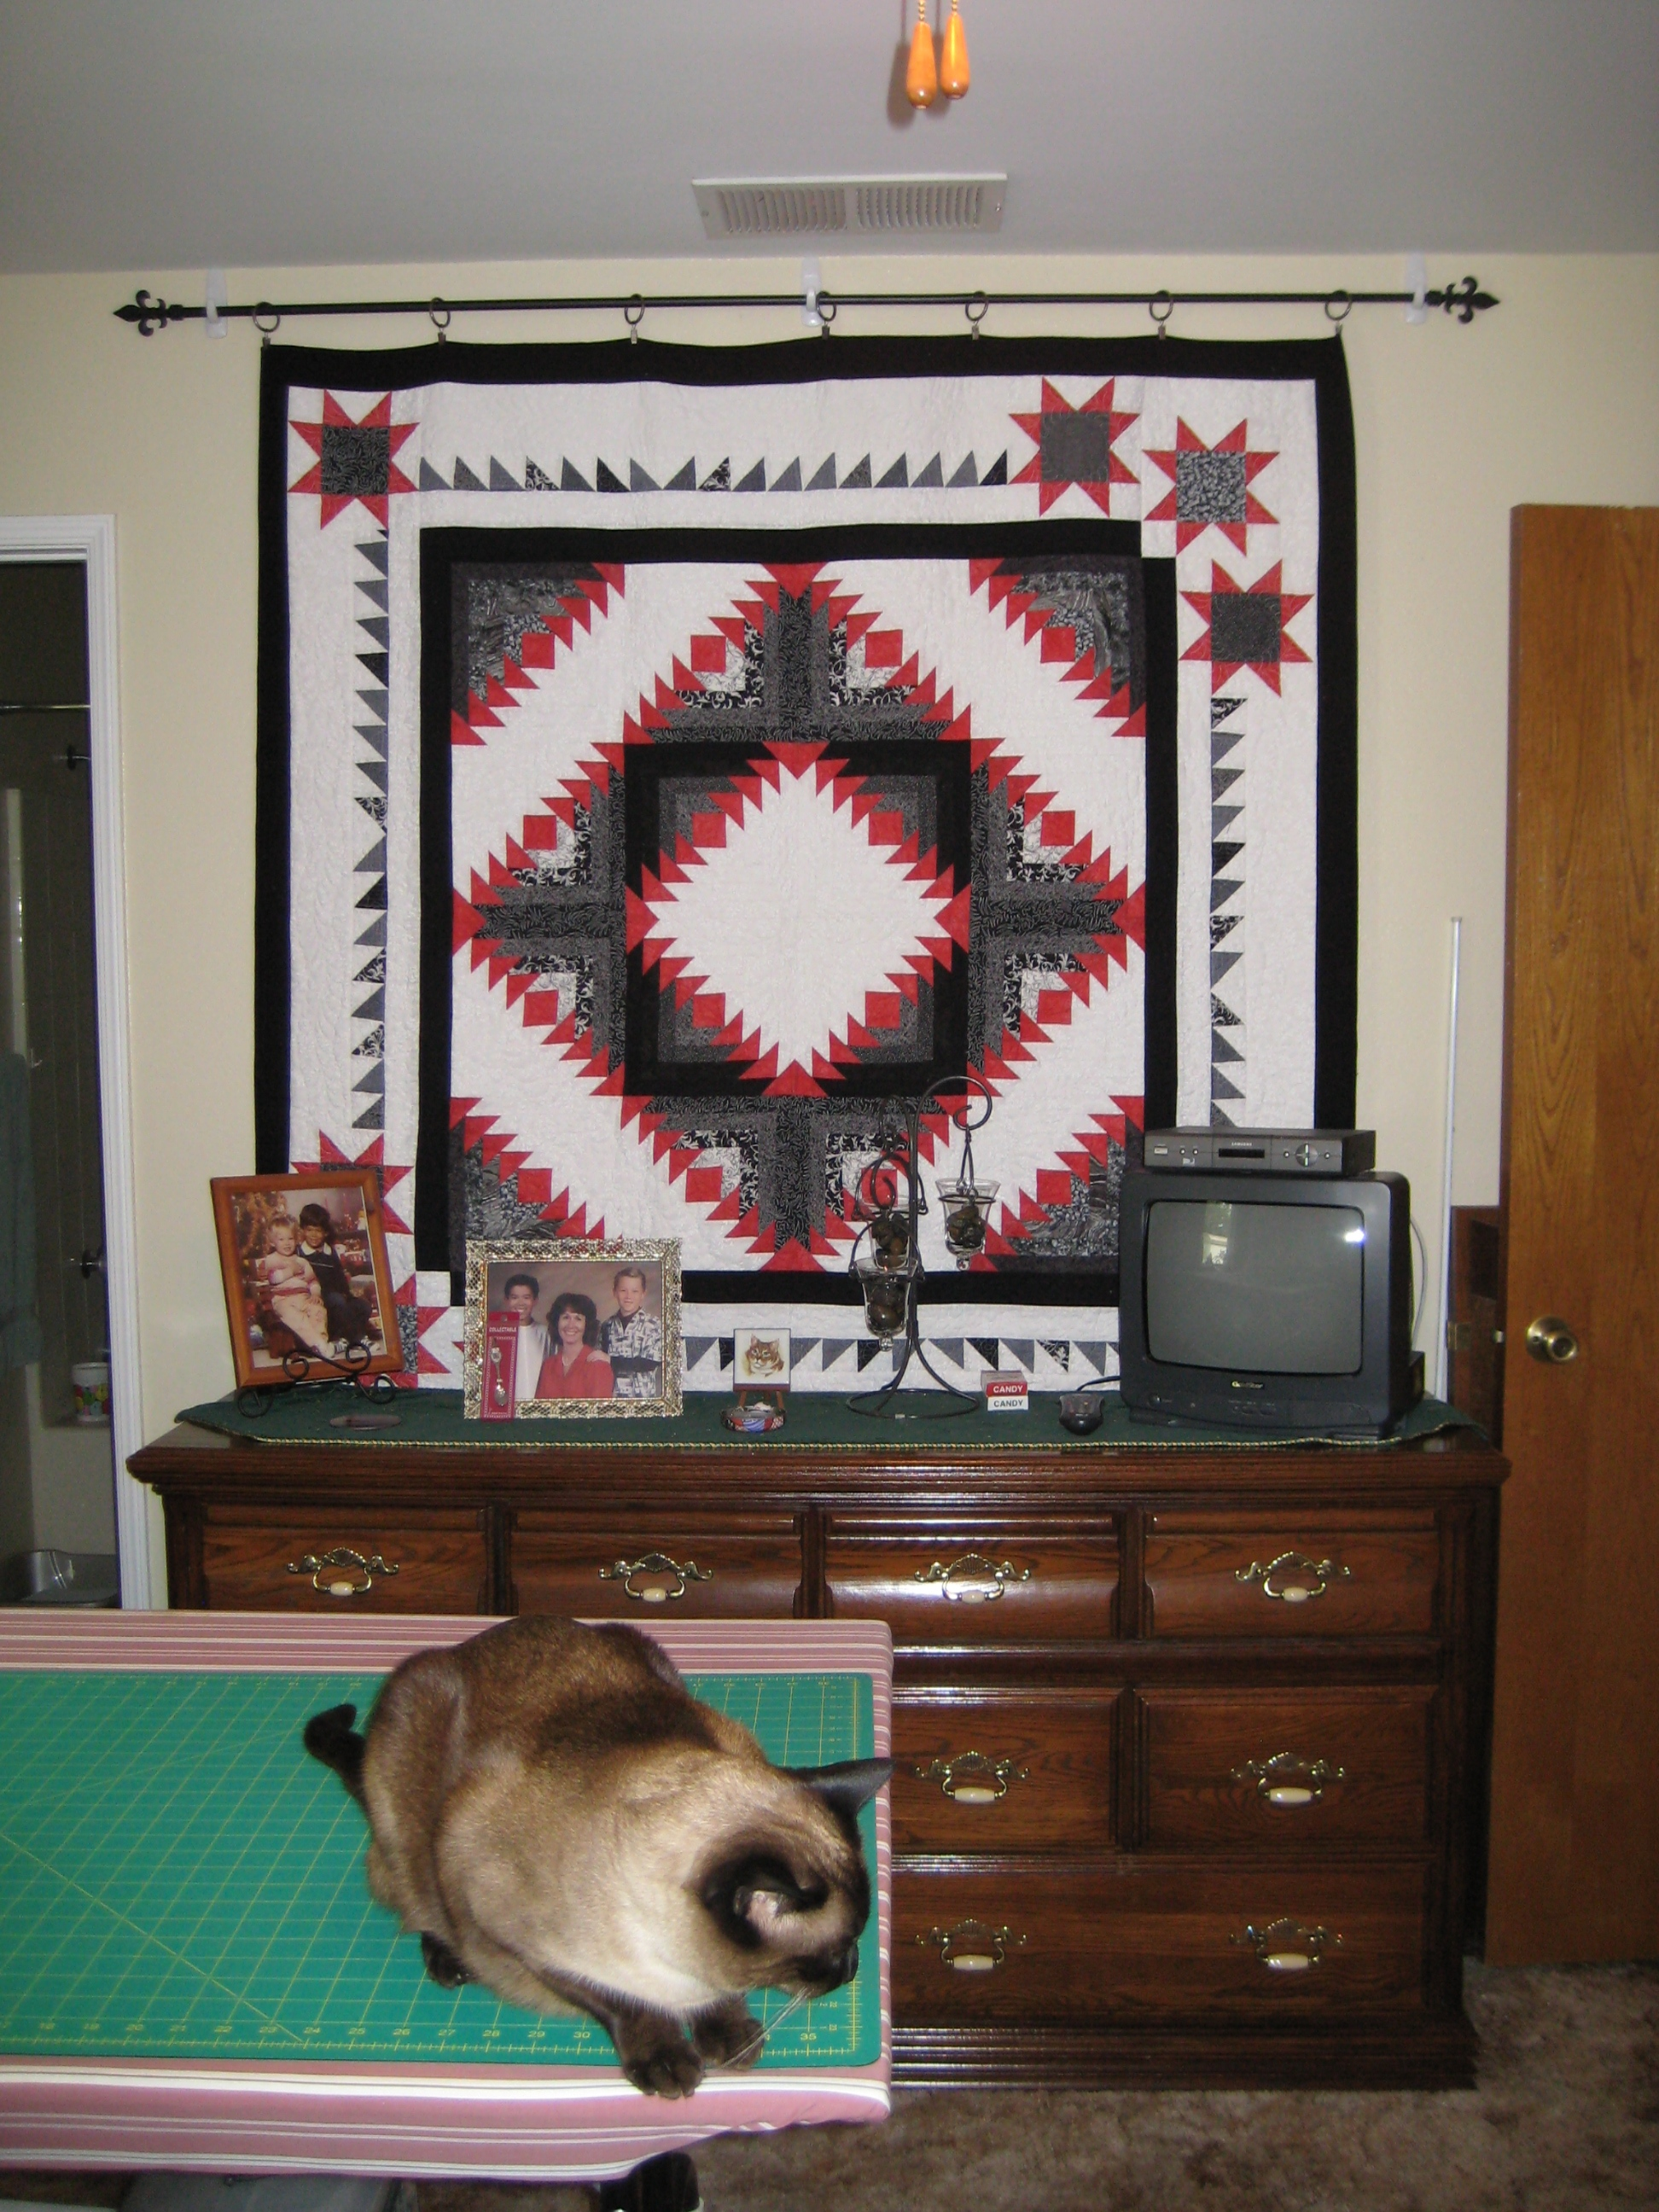 How Do You Hang Your Wall Quilts Without Making Holes In